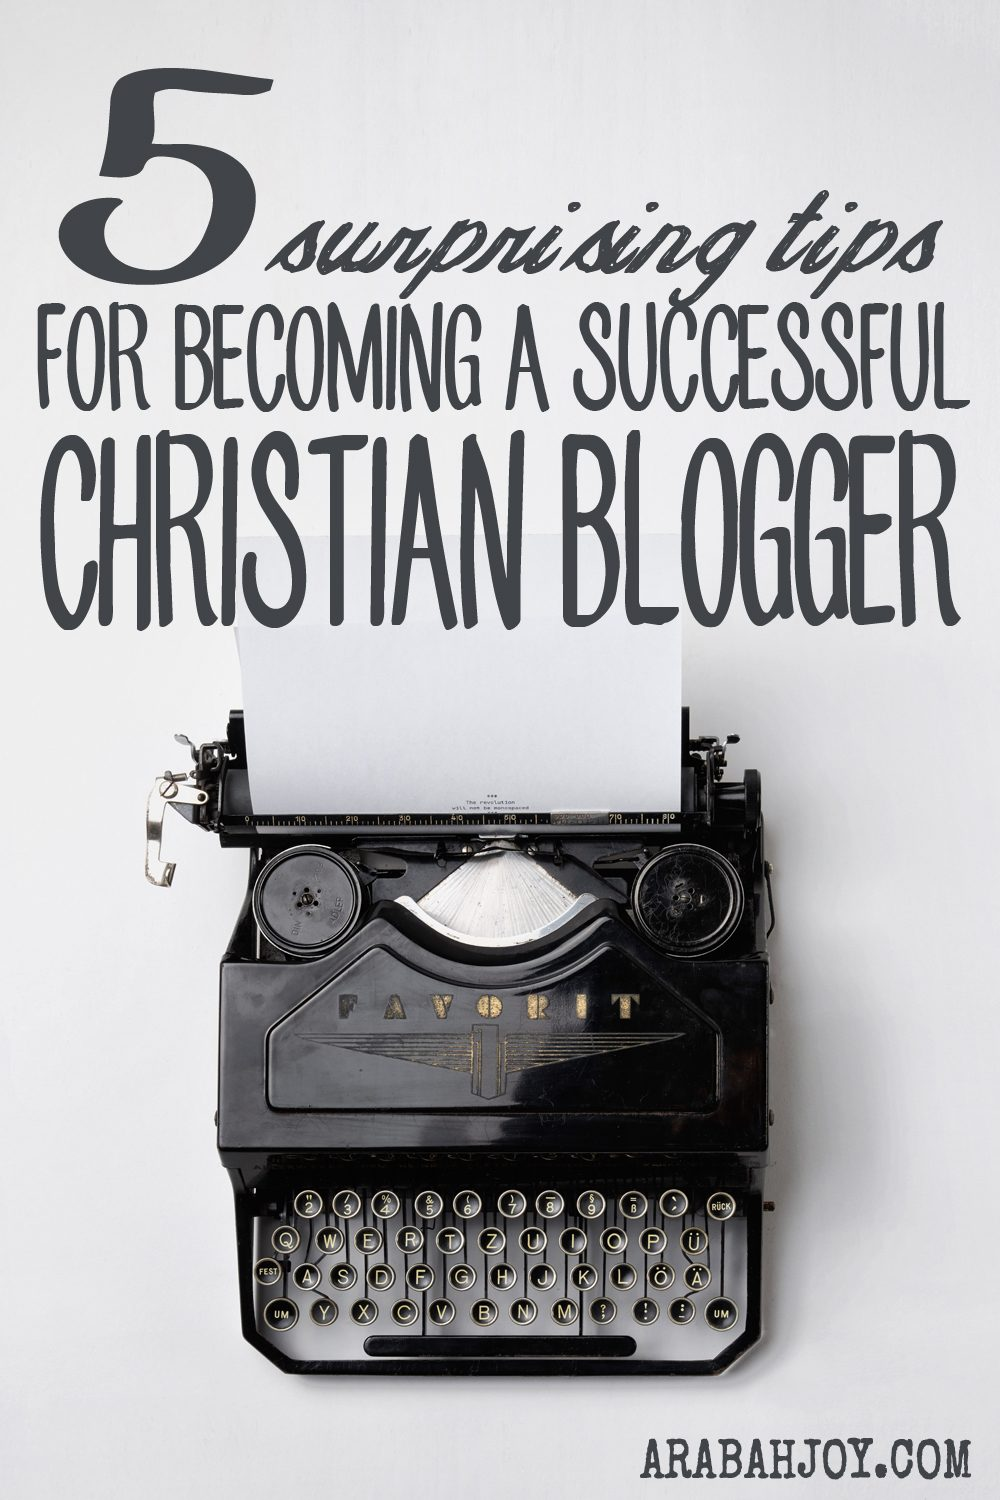 Read these 5 tips for being a successful Christian blogger -- taken from the book of I John.